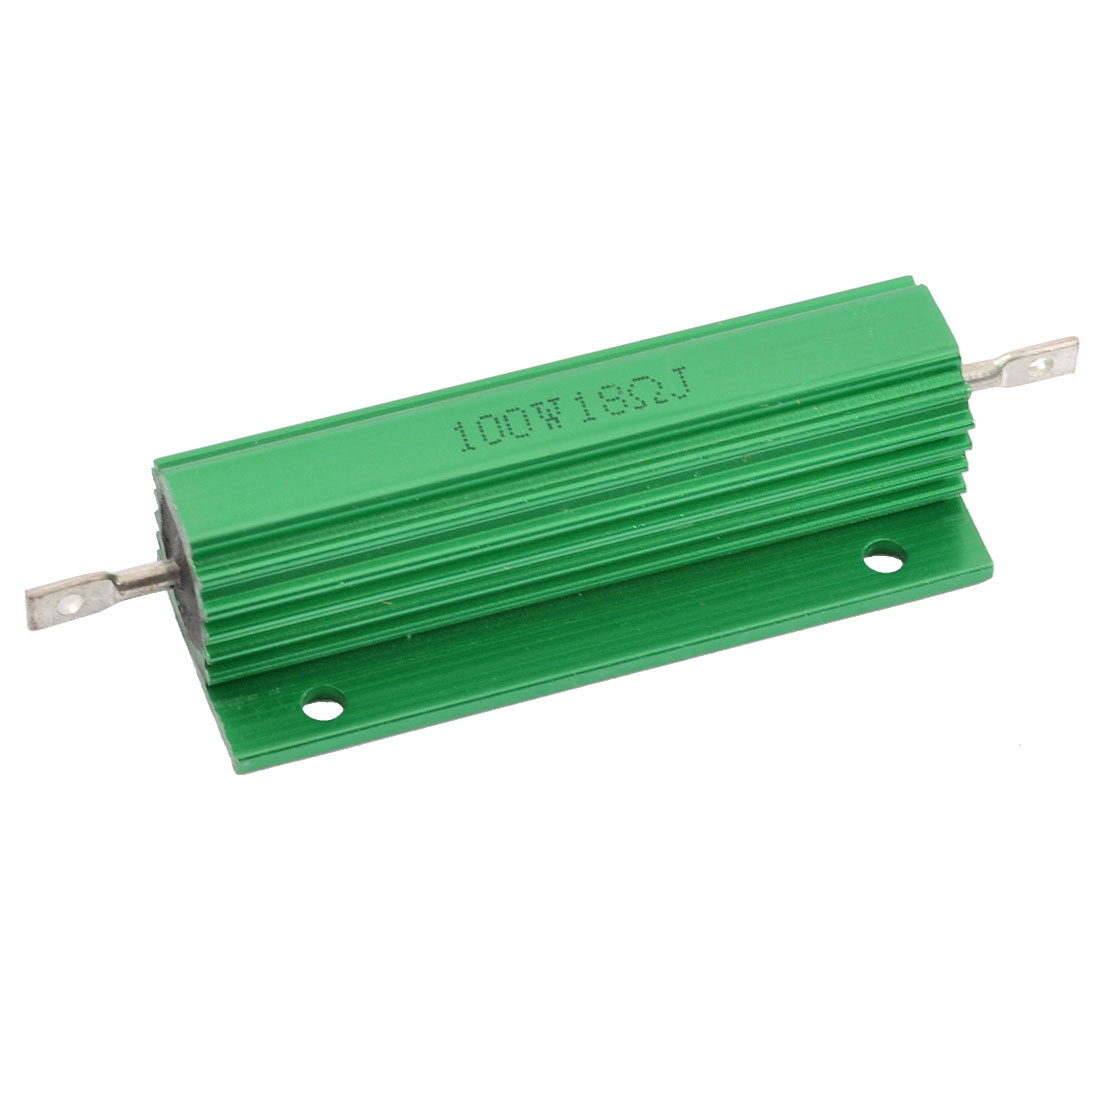 Chassis Mounted 100W Watt 18 Ohm Aluminum Shell Wirewound Power Resistor